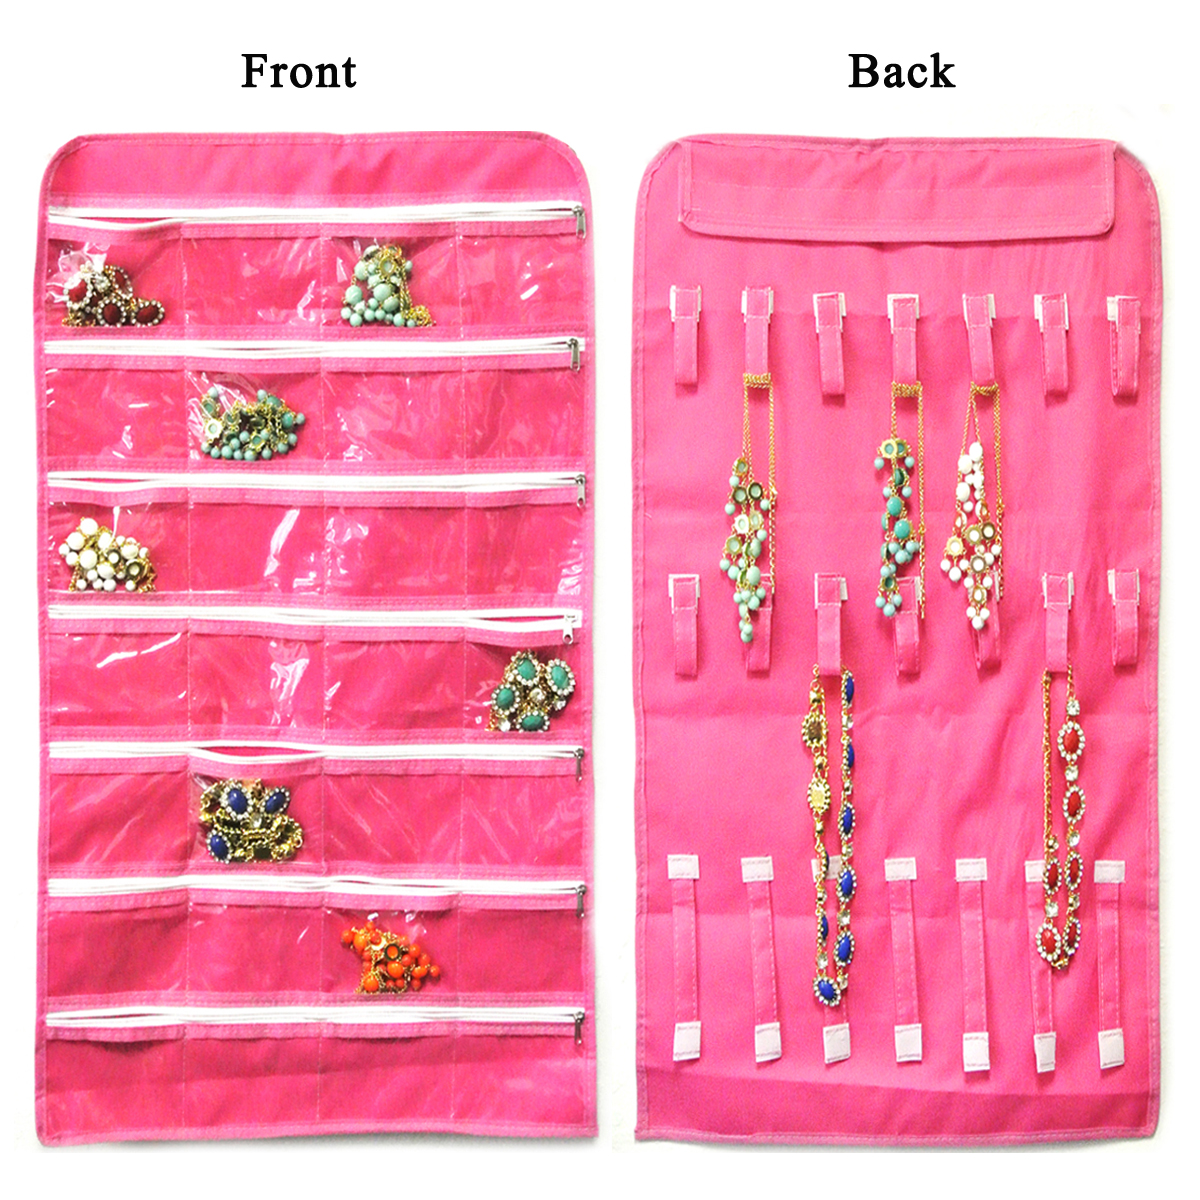 Wrapables 28 Zippered Pockets Hanging Jewelry Organizer with 21